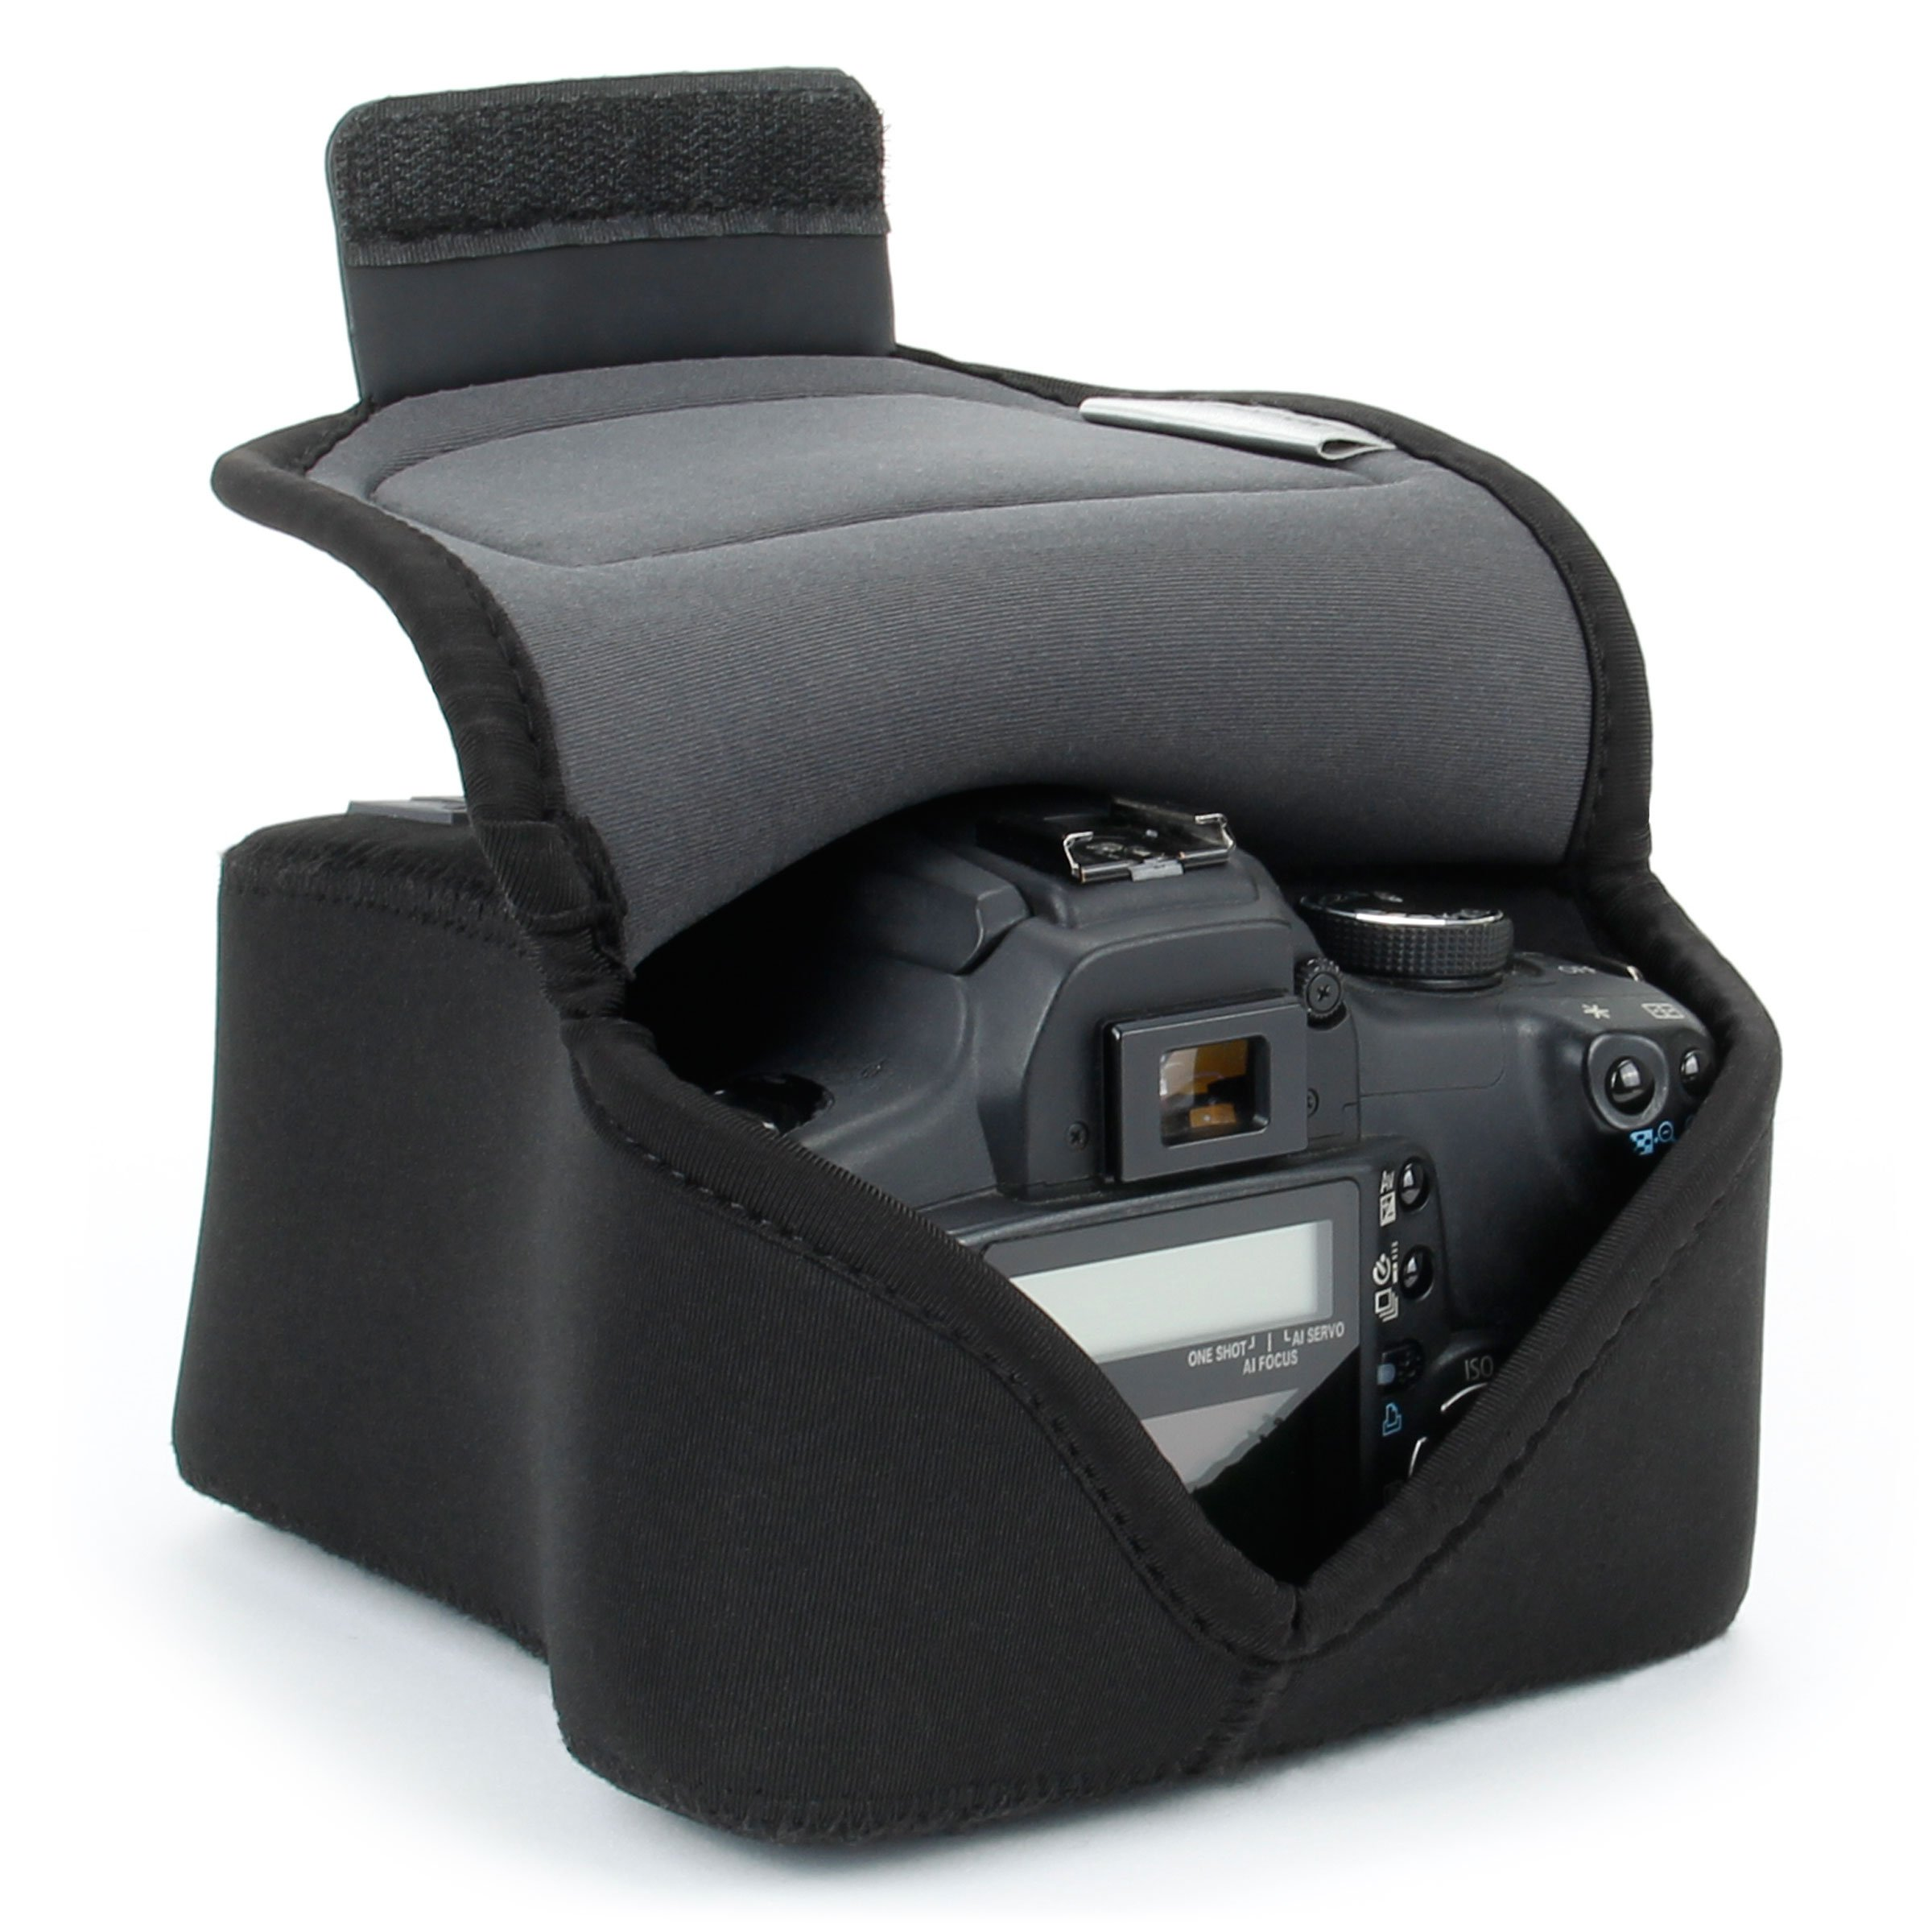 USA Gear DSLR Camera Case/SLR Camera Sleeve (Black) with Neoprene Protection, Holster Belt Loop and Accessory Storage by USA Gear - Works With Nikon D3400/Canon EOS Rebel SL2/Pentax K-70 & Many More